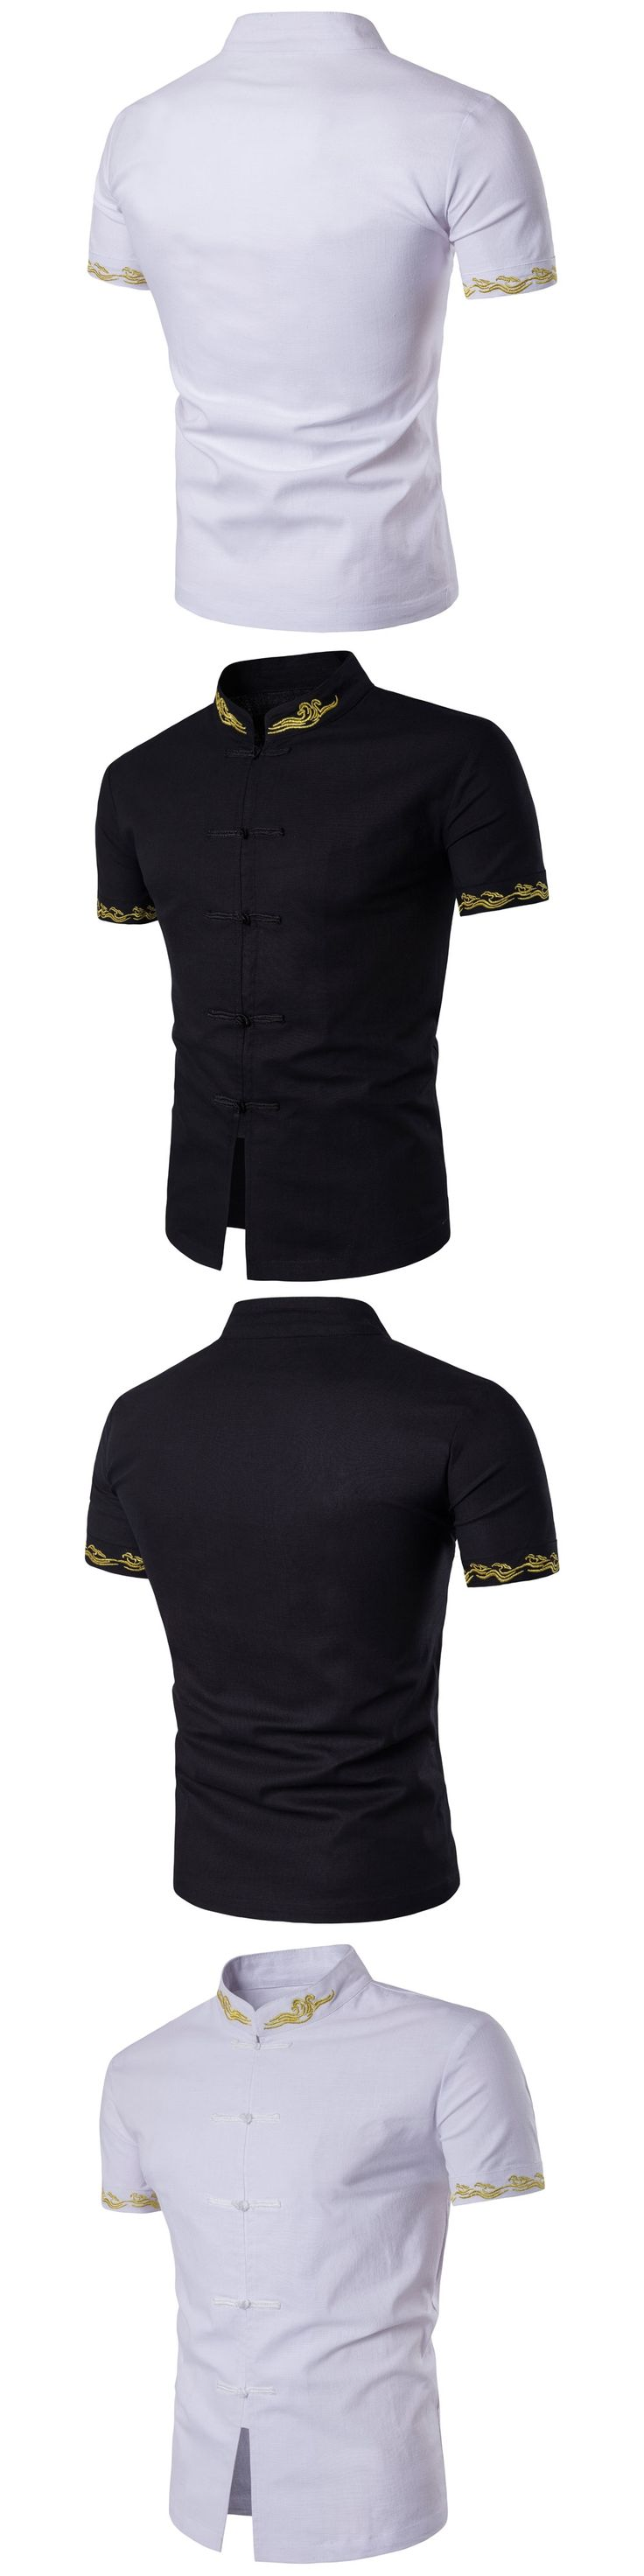 Chinese Style Cotton Men Shirts Embroidered Casual Male Shirt Slim Fit Mens Formal Shirts Short Sleeve White Black Camisa Hombre